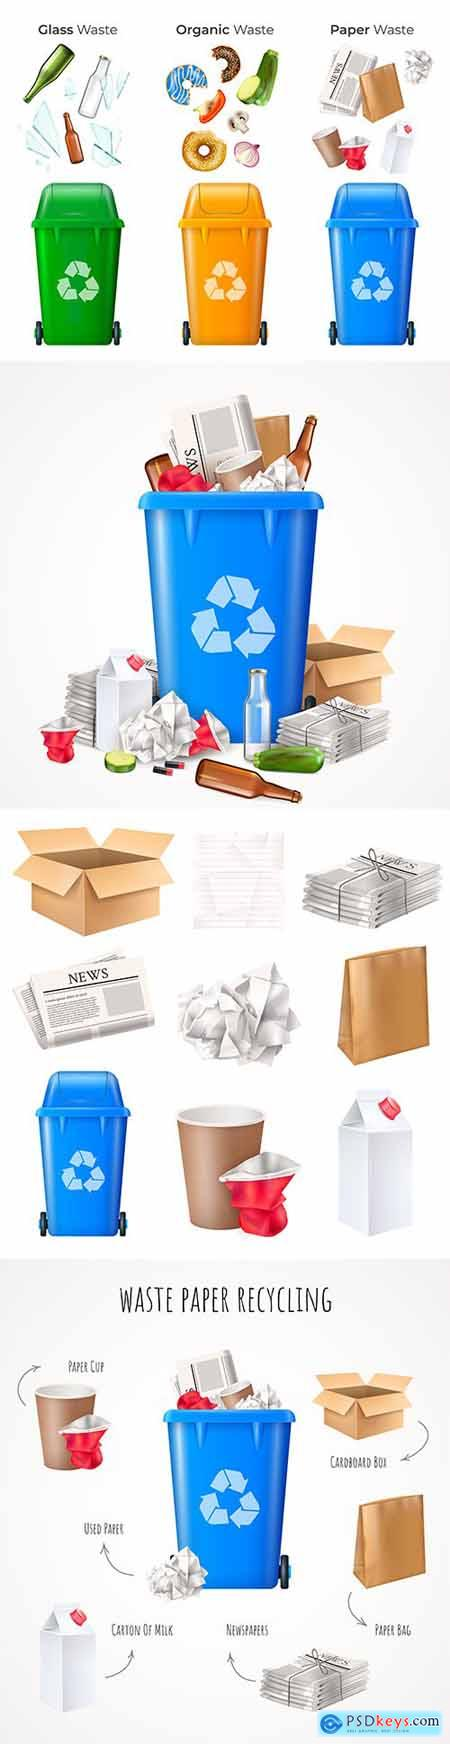 Recycling waste paper and waste for recycling